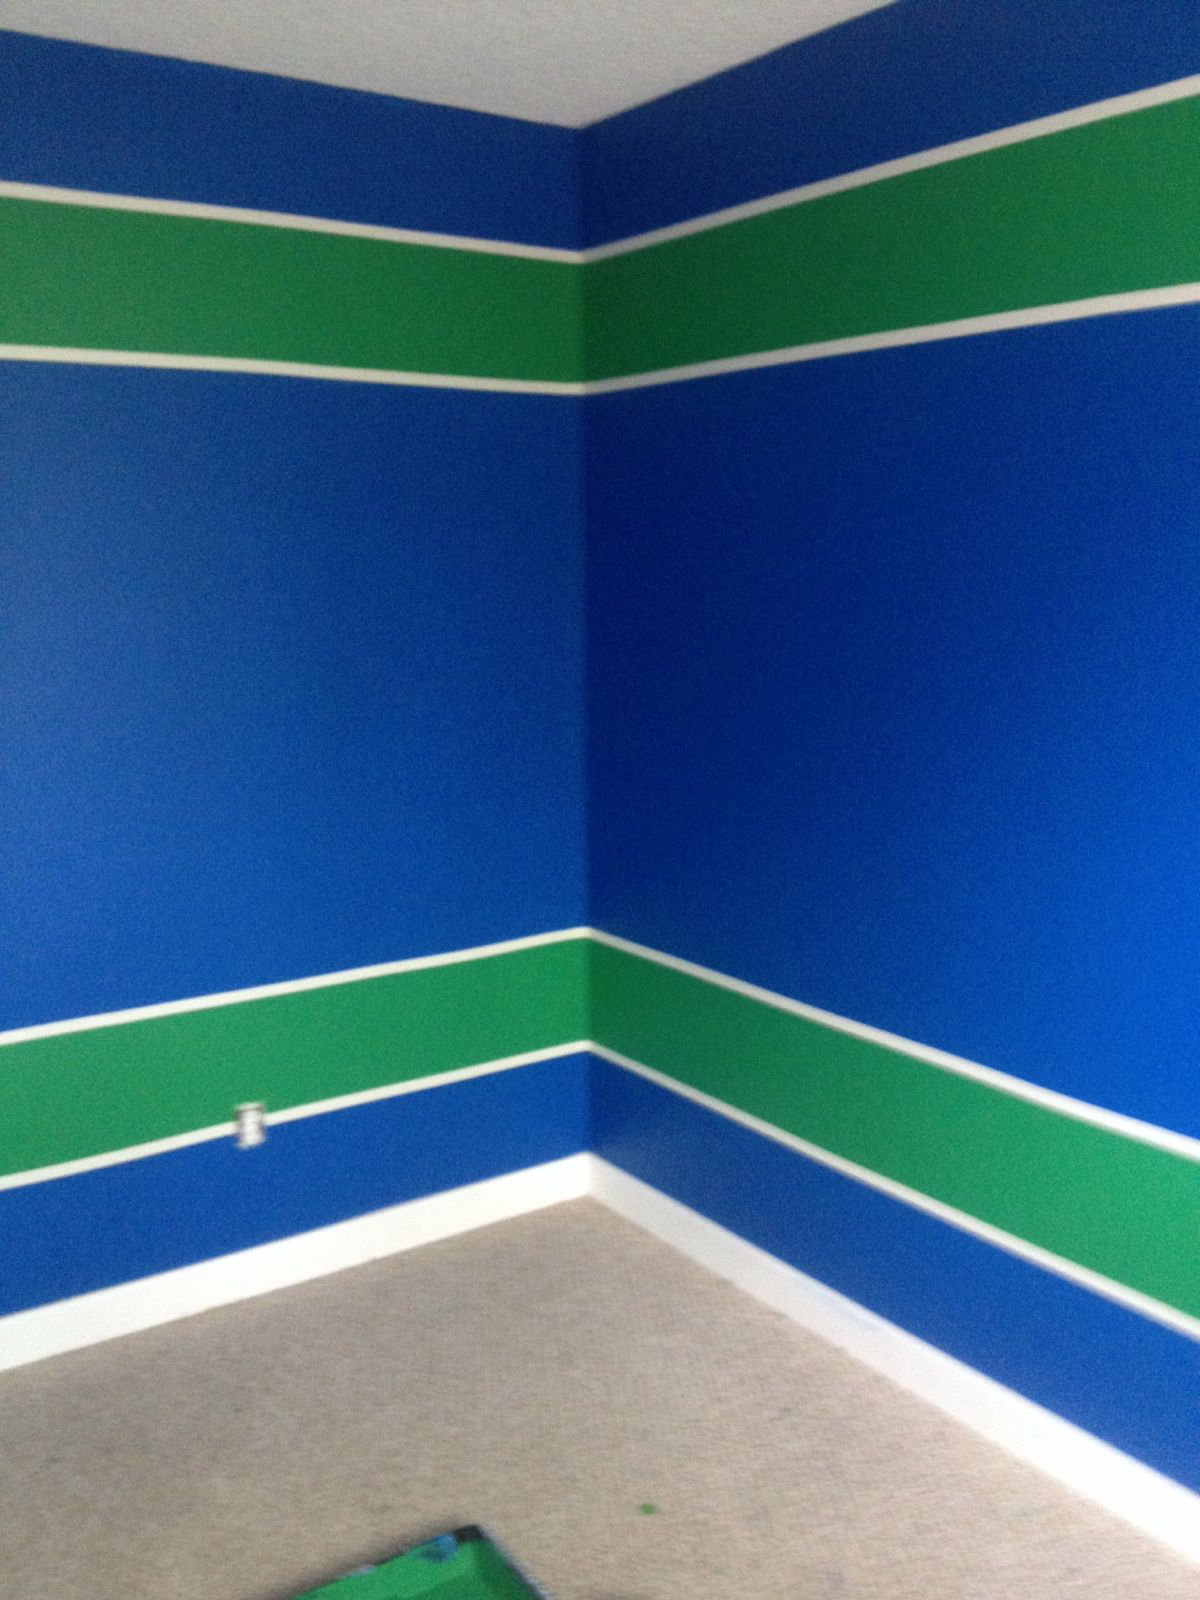 Bedroom colors blue and green - Painted Jesse S Room Vancouver Canucks Colours Blue And Green Bedroom